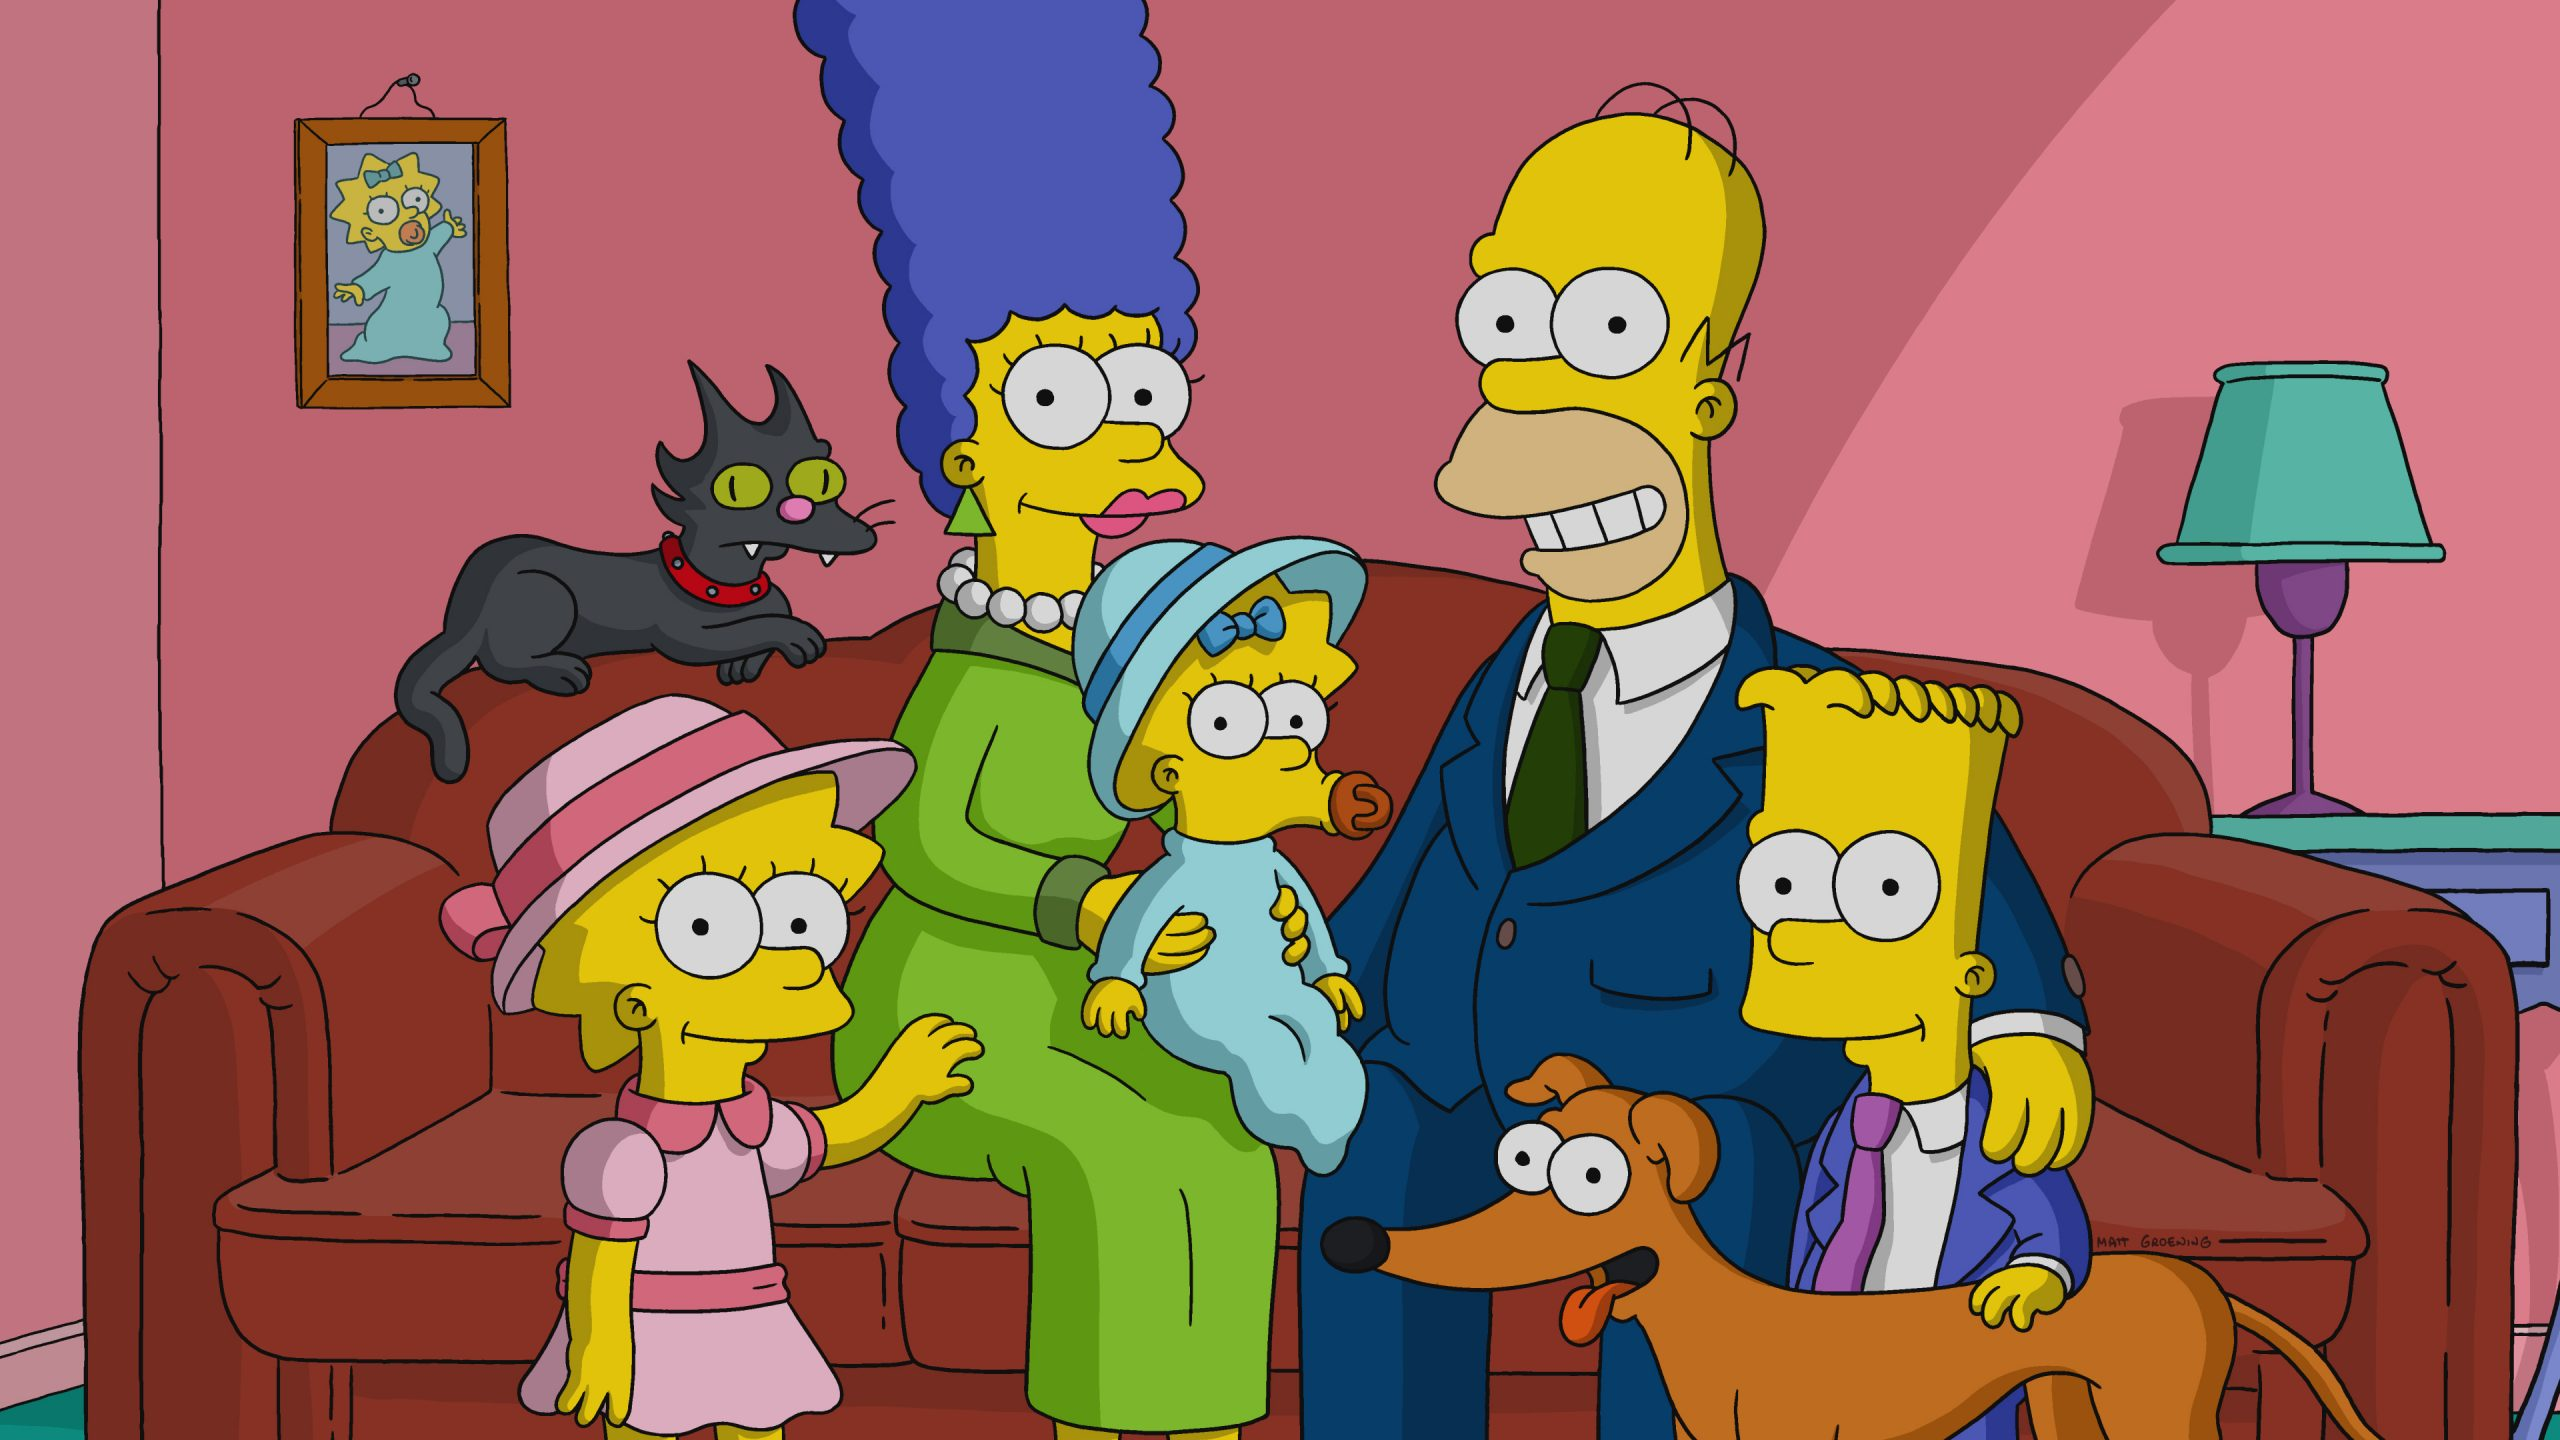 Is The Simpsons On Netflix Disney Plus Hulu Where To Watch The Simpsons